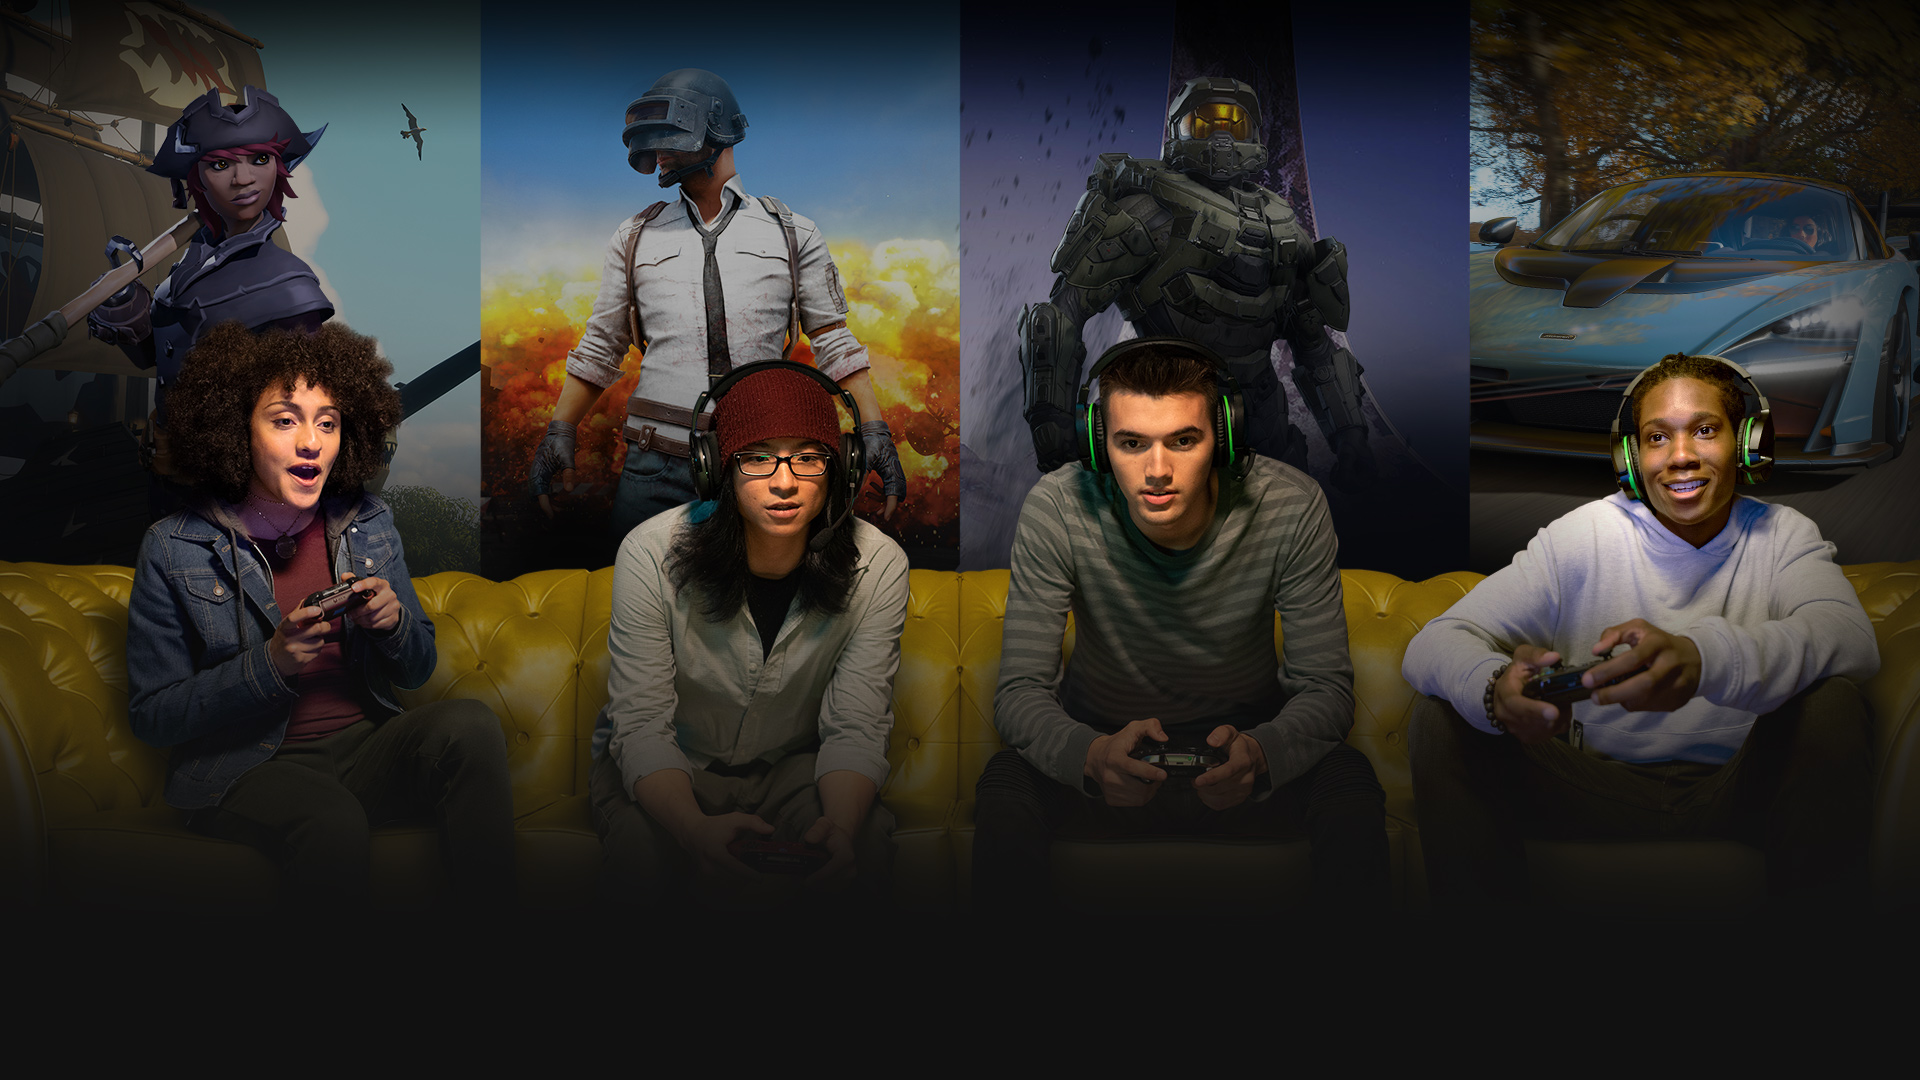 Four people holding Xbox One controllers and playing multiplayer games together, with a background collage of characters from Sea of Thieves, PLAYERUNKNOWN'S BATTLEGROUNDS, Halo, and Forza